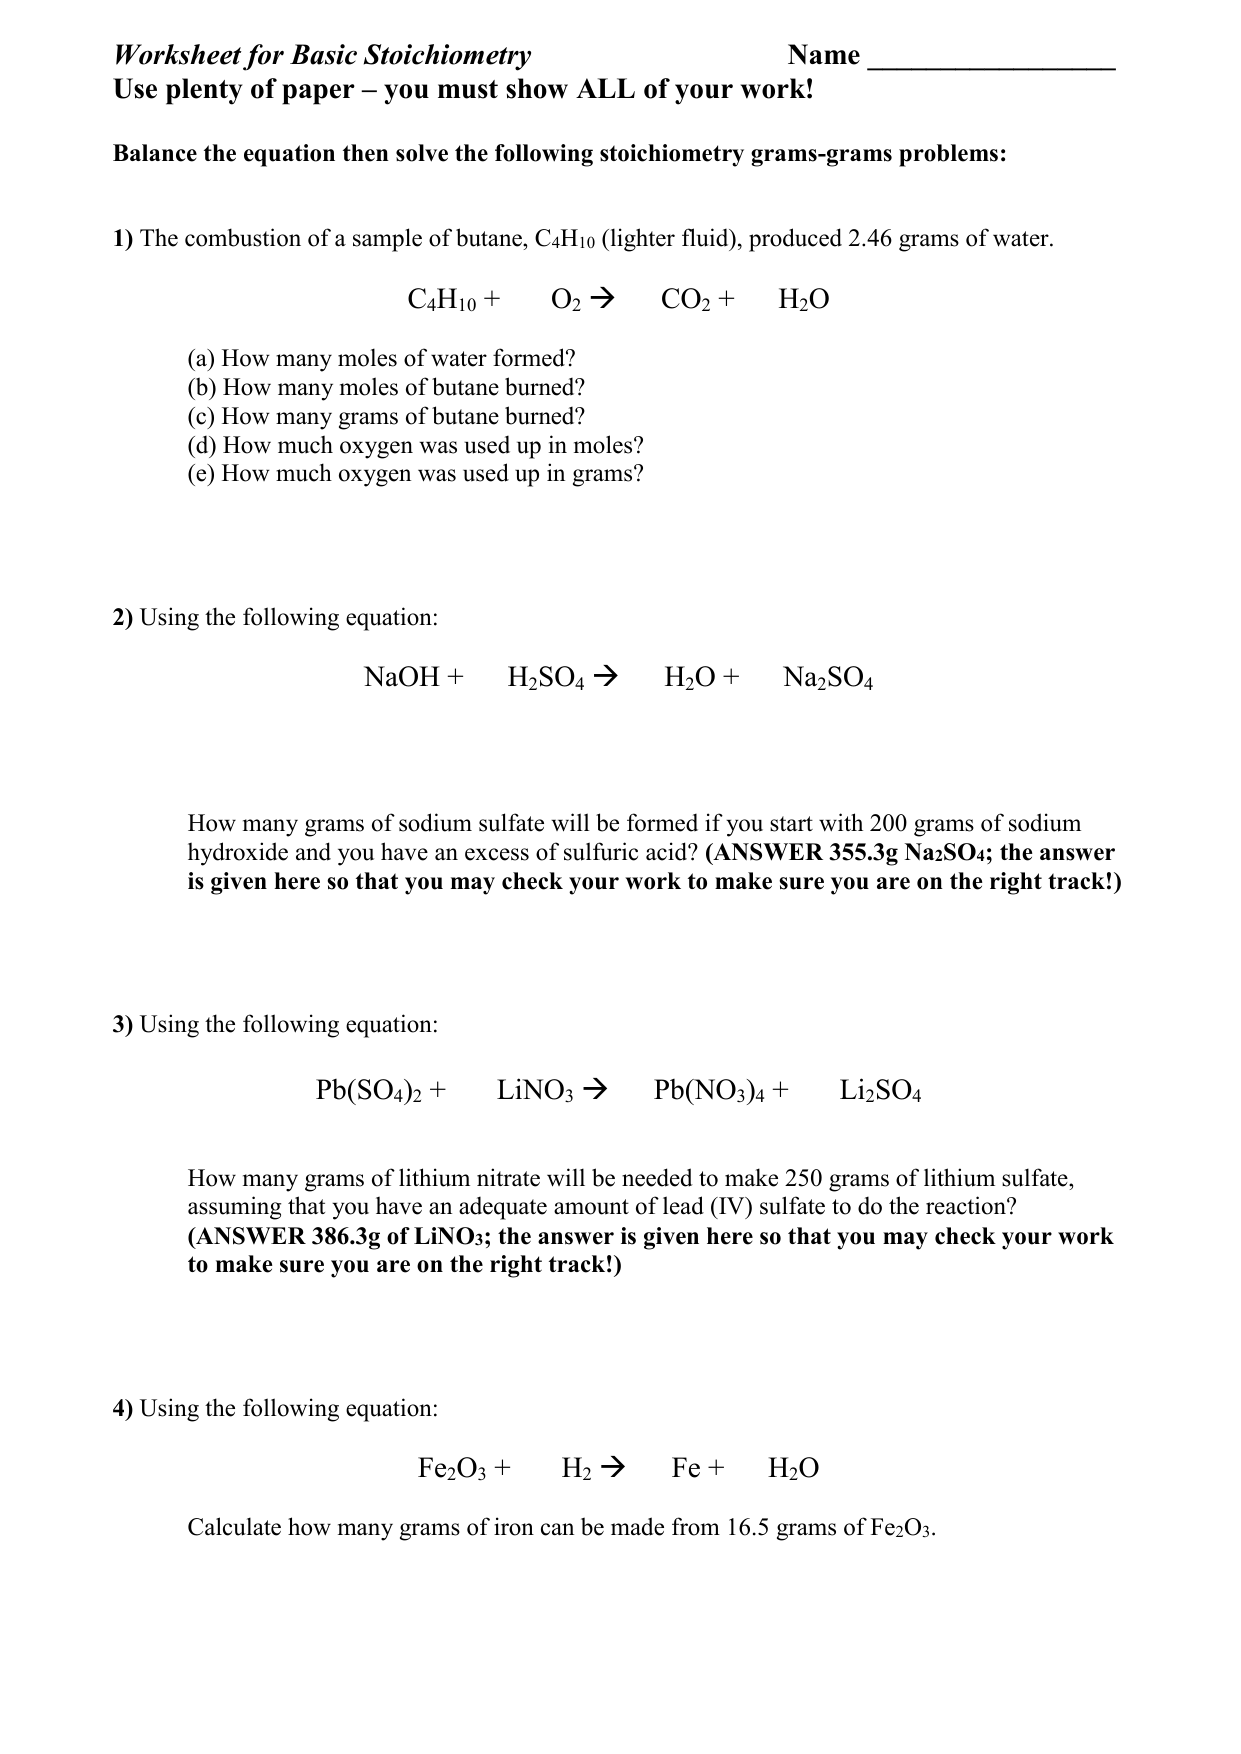 Worksheet For Basic Stoichiometry